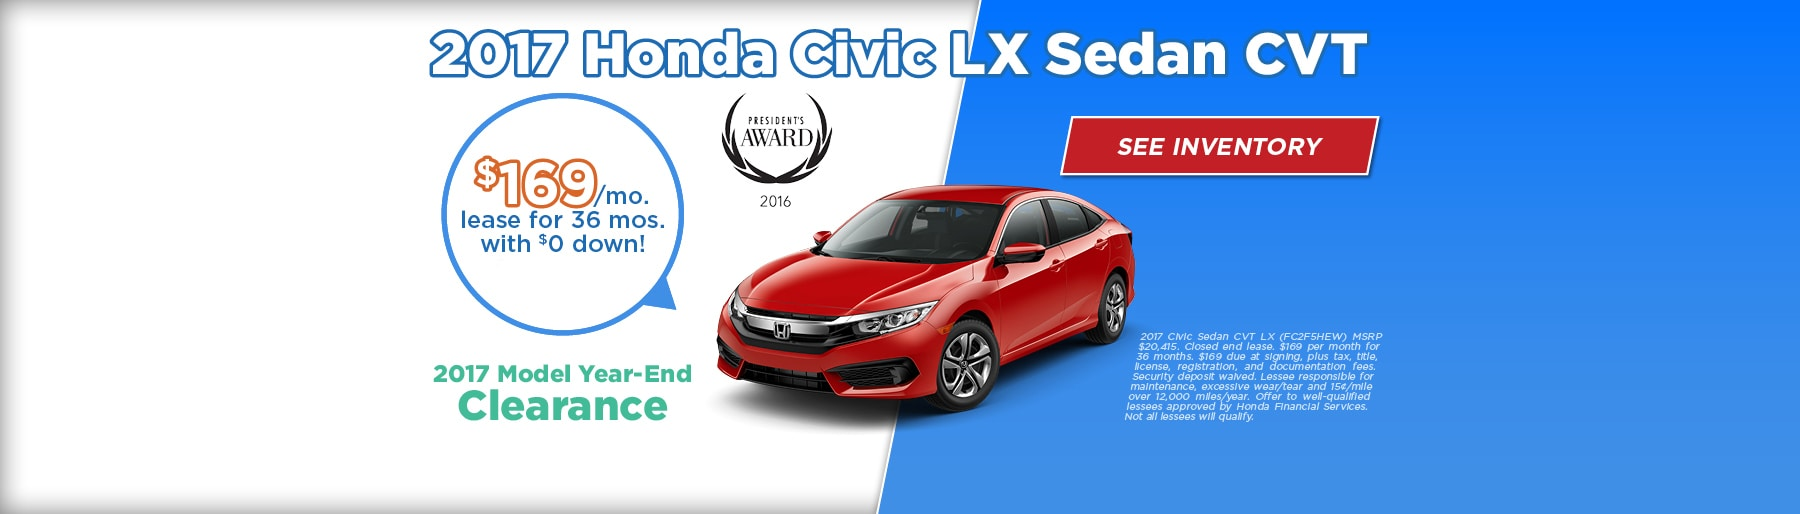 Proudly serving san antonio gunn honda is the place to check out your next honda civic cr v accord odyssey or pilot